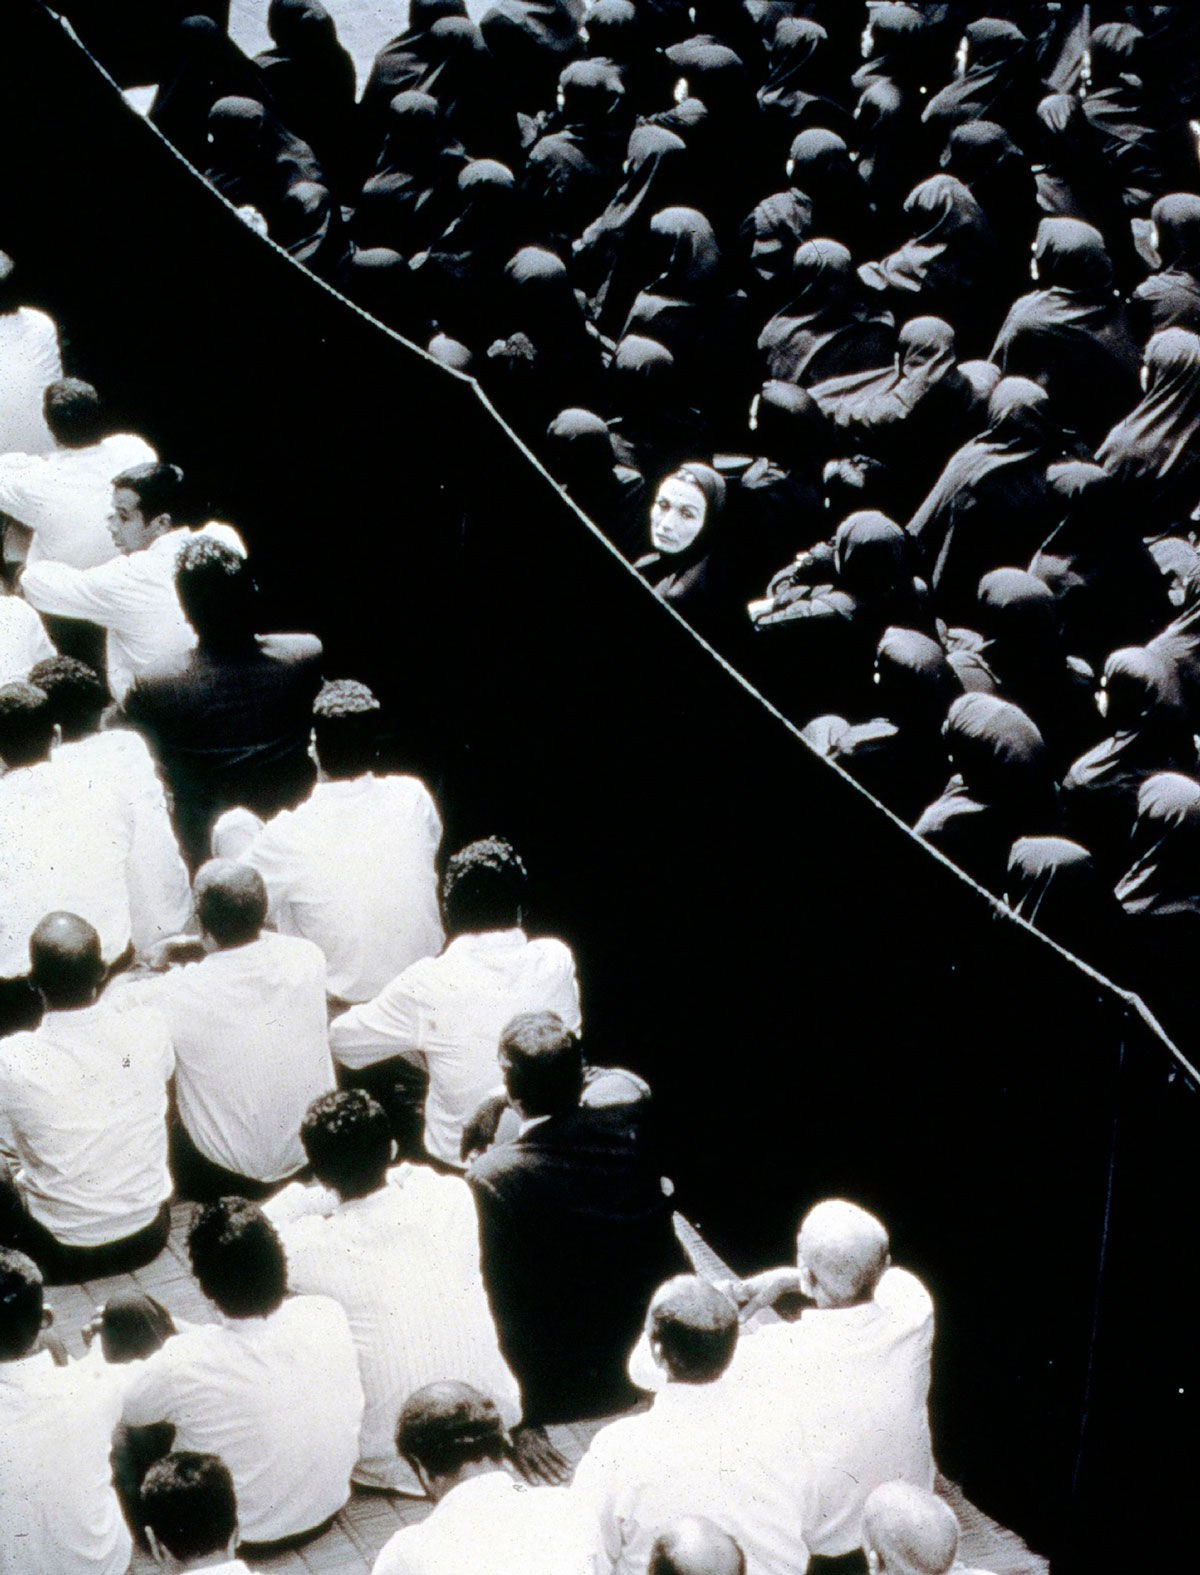 Shirin Neshat, Fervor (film still), 2000. Photo by Larry Barns. © Shirin Neshat. Courtesy of the artist and Gladstone Gallery, New York and Brussels.